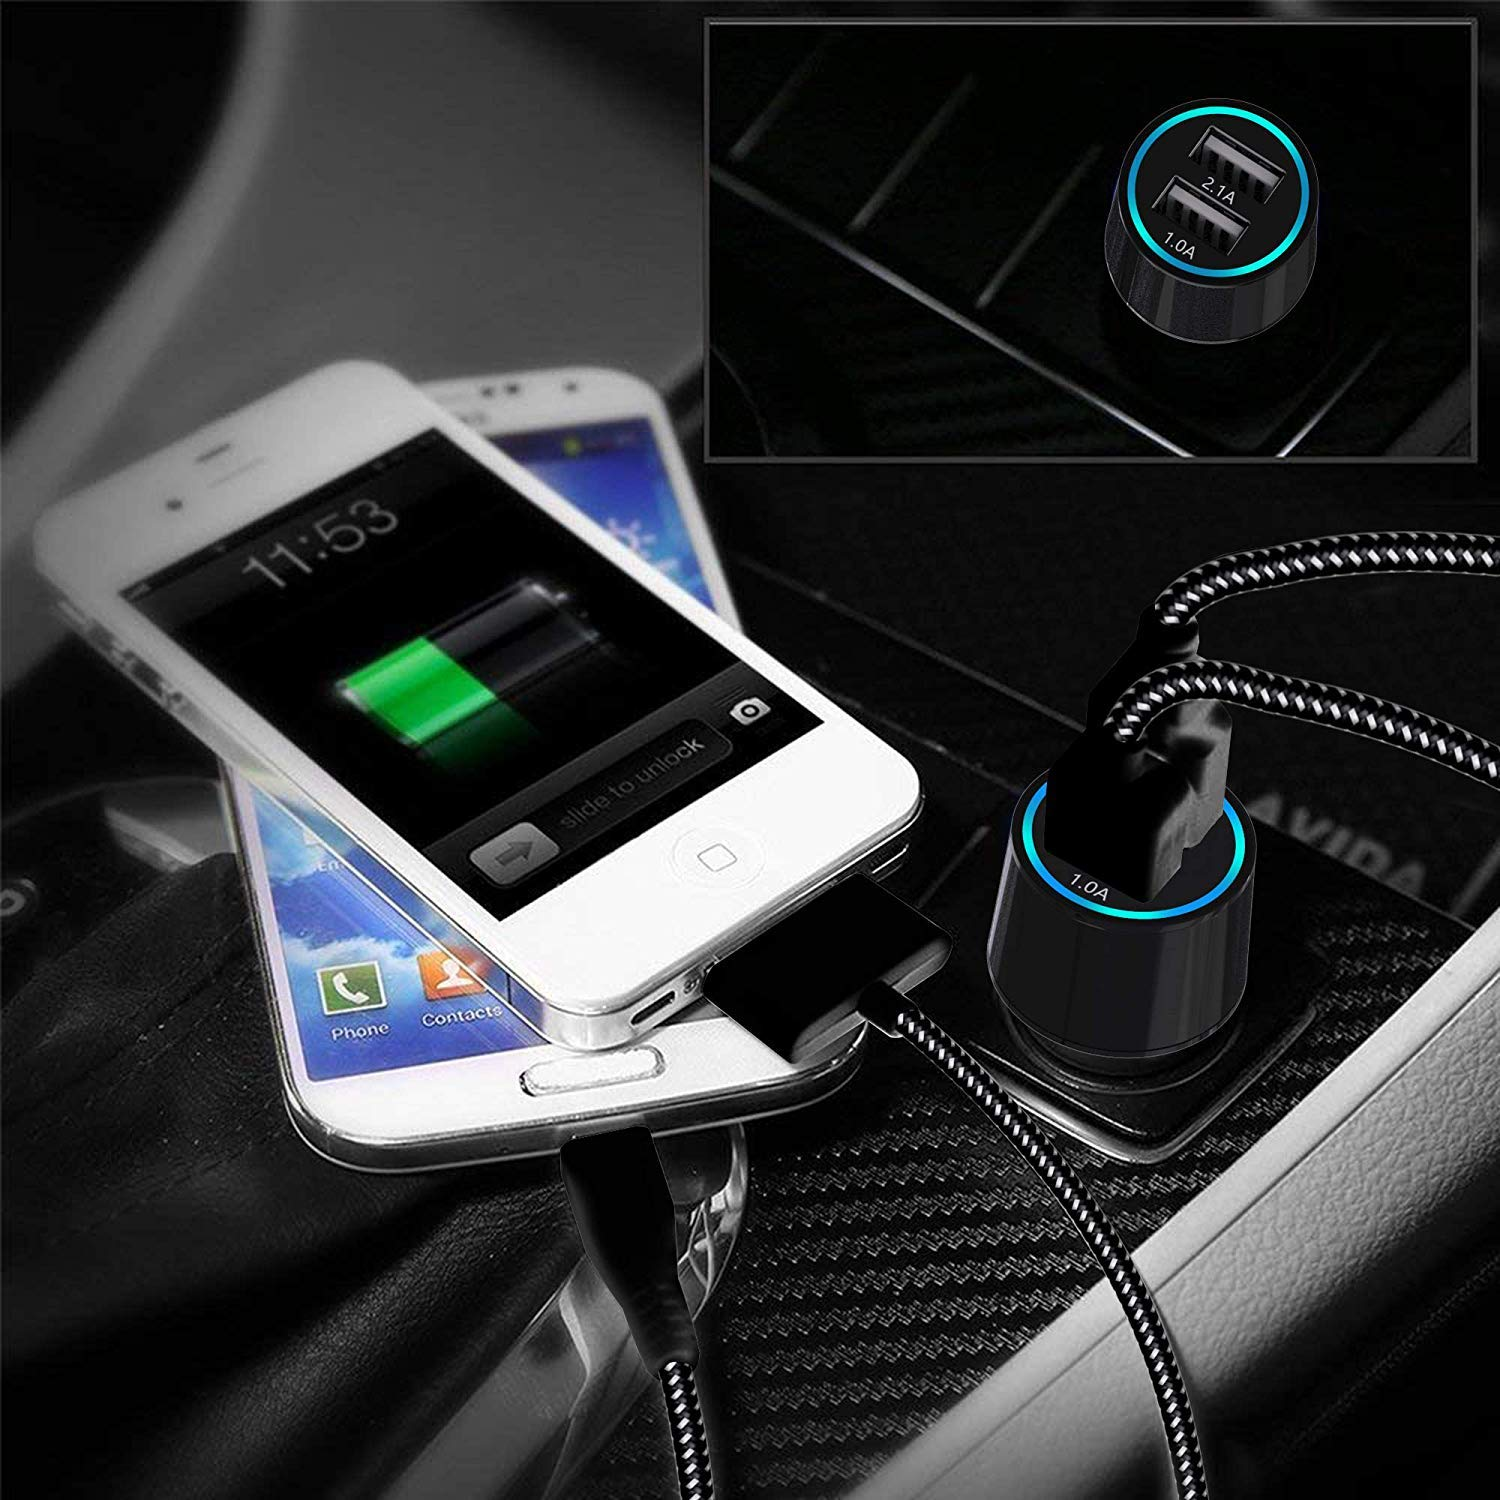 3.1A Rapid Dual Port USB Car Charger with 6ft USB Charging Cable Compatible for i Phone X 8 8 Plus 7 6s 6s Plus 5S 5 5C SE and More jonhson 4352718120 USB Car Charger